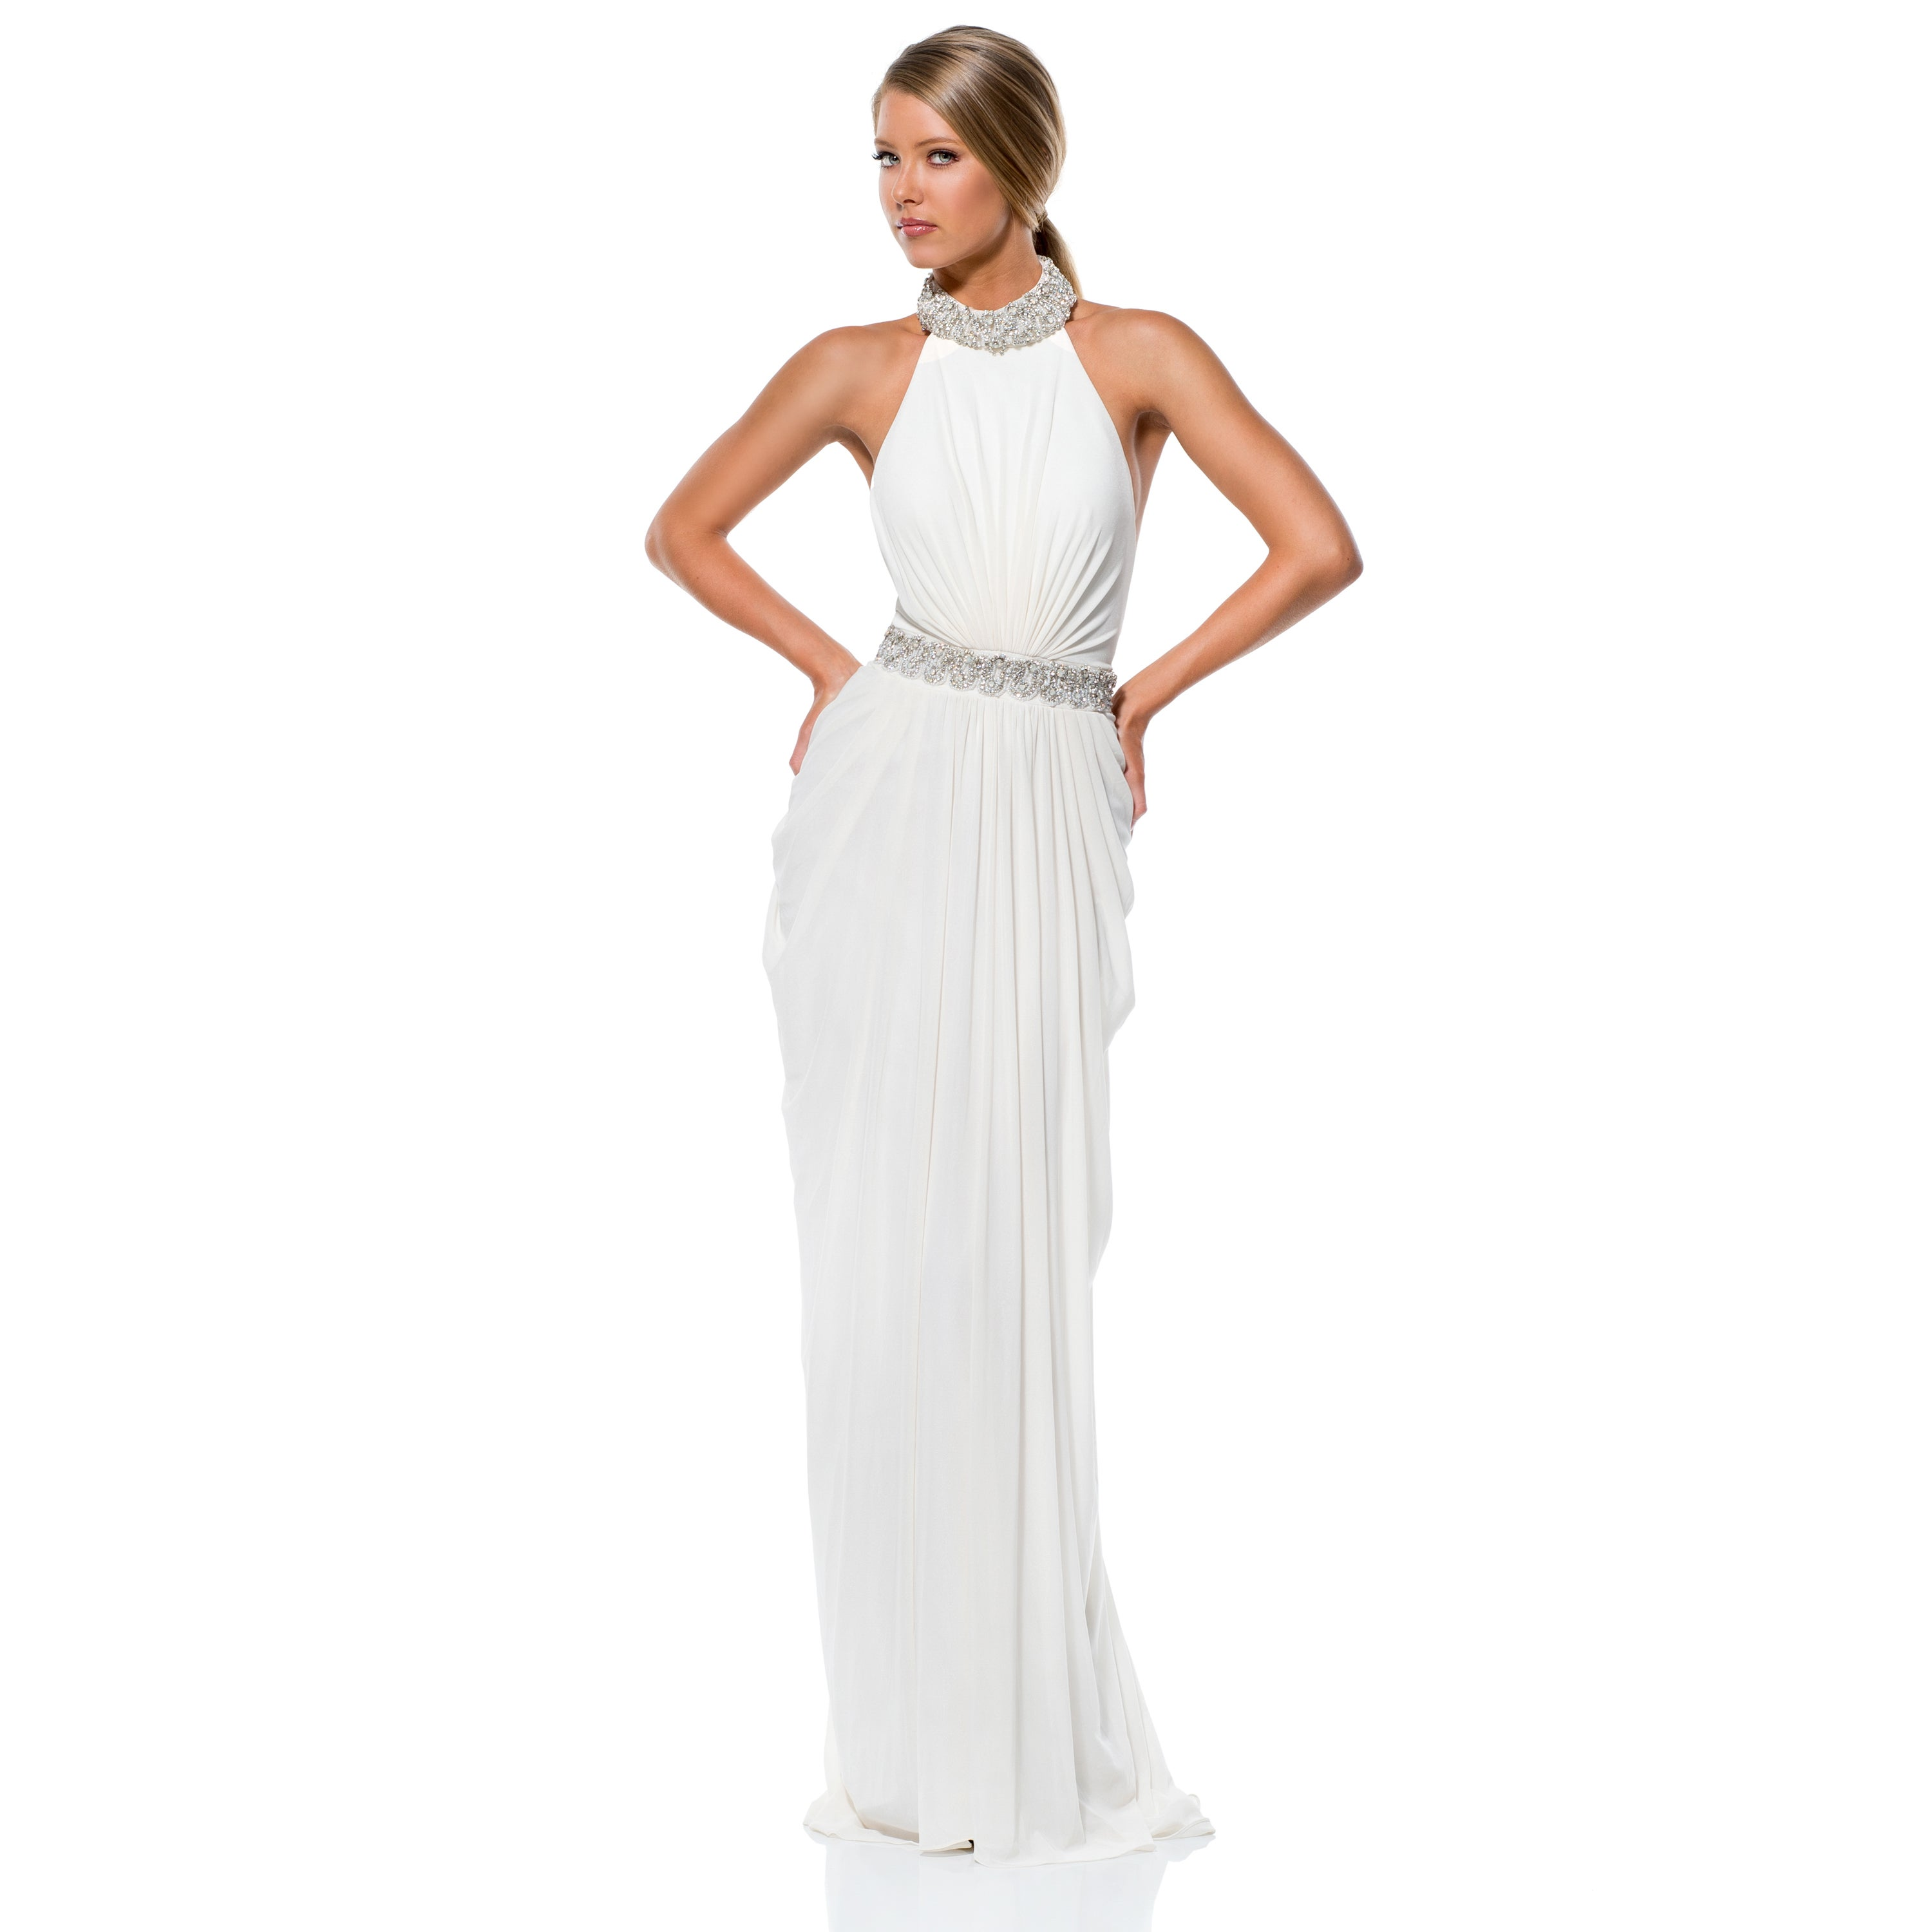 Terani Couture Halter Top Wedding Gown - Free Shipping Today ...